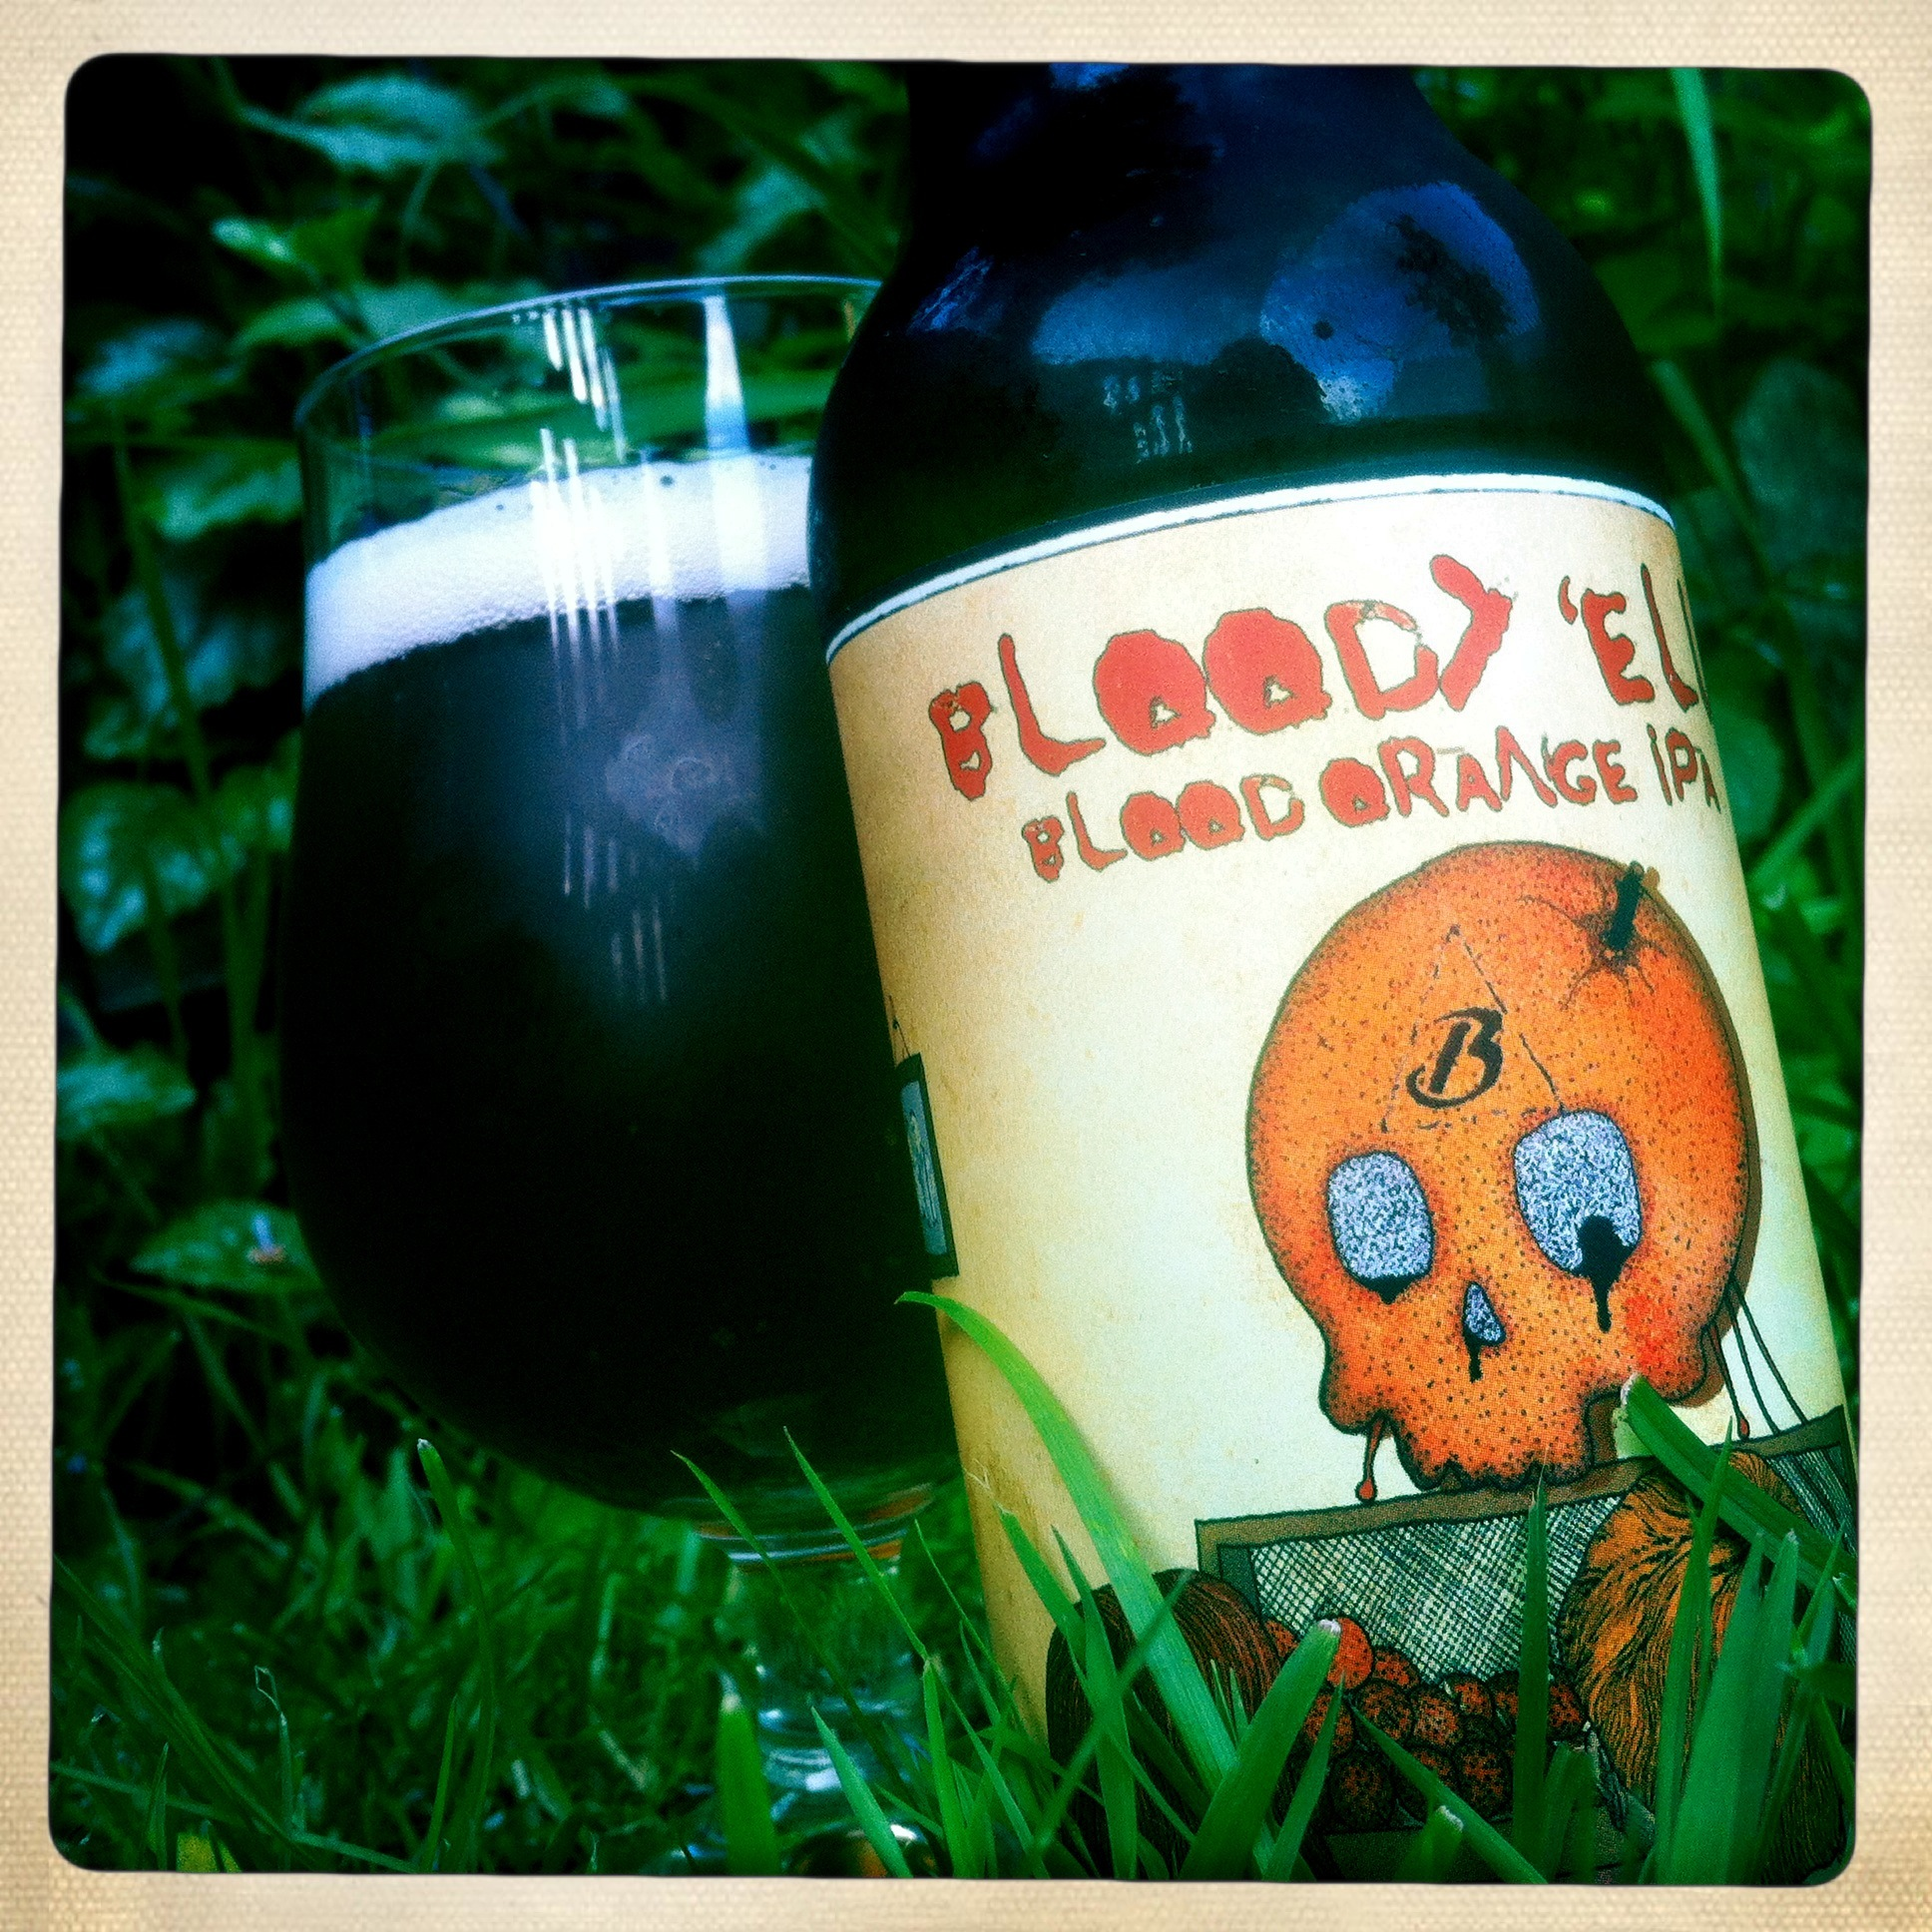 Bloody 'ell is yet another beautifully dressed beer from Beavertown.